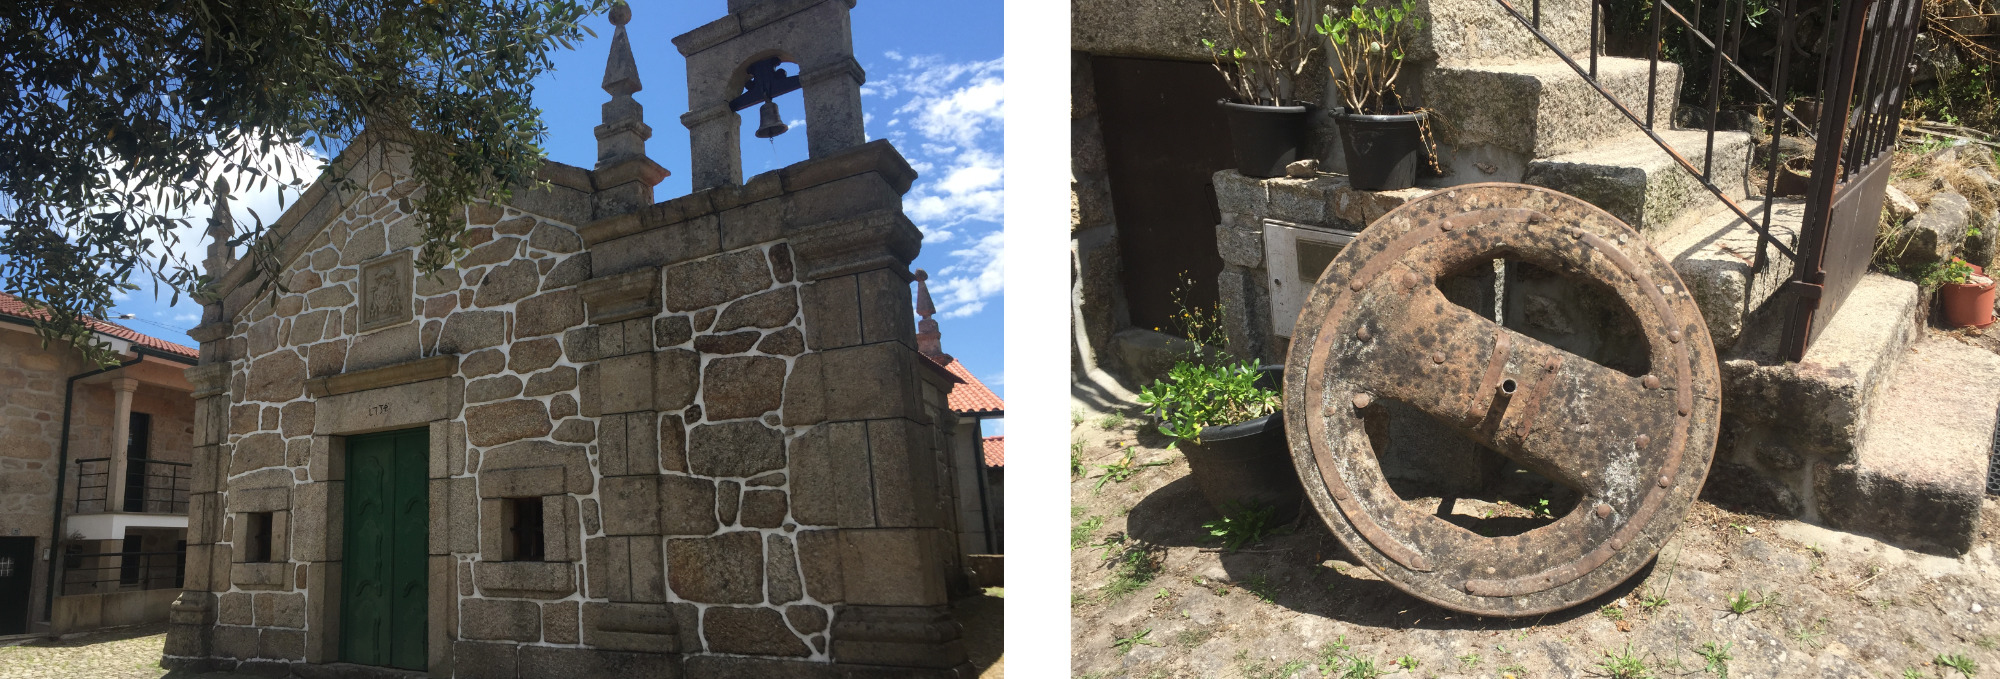 A stone chapel and a holiday home with a cart wheel in Froufe